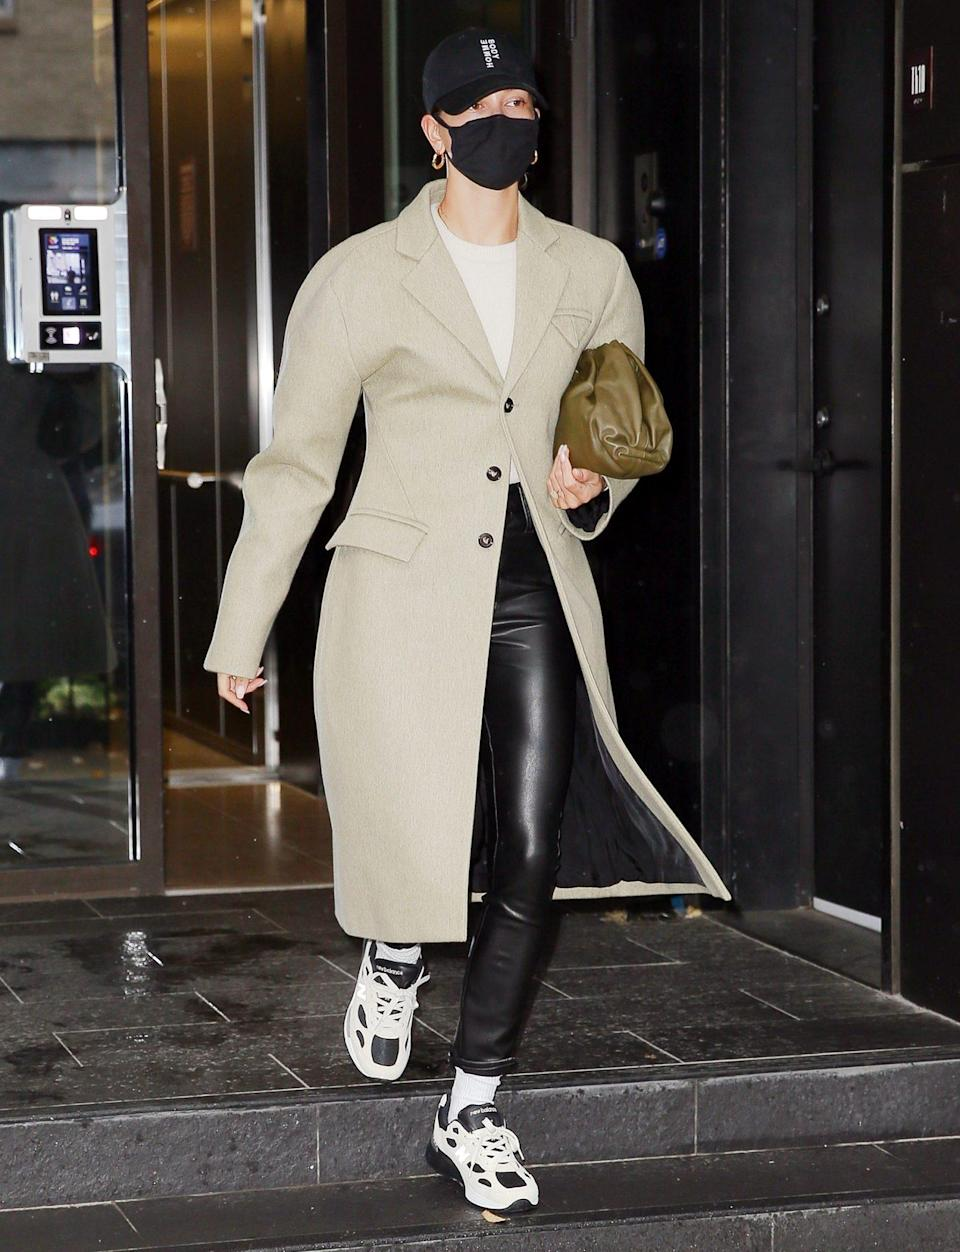 <p>Hailey Bieber steps out in a baseball cap, a long coat and sneakers on Monday morning to start her day in N.Y.C.</p>